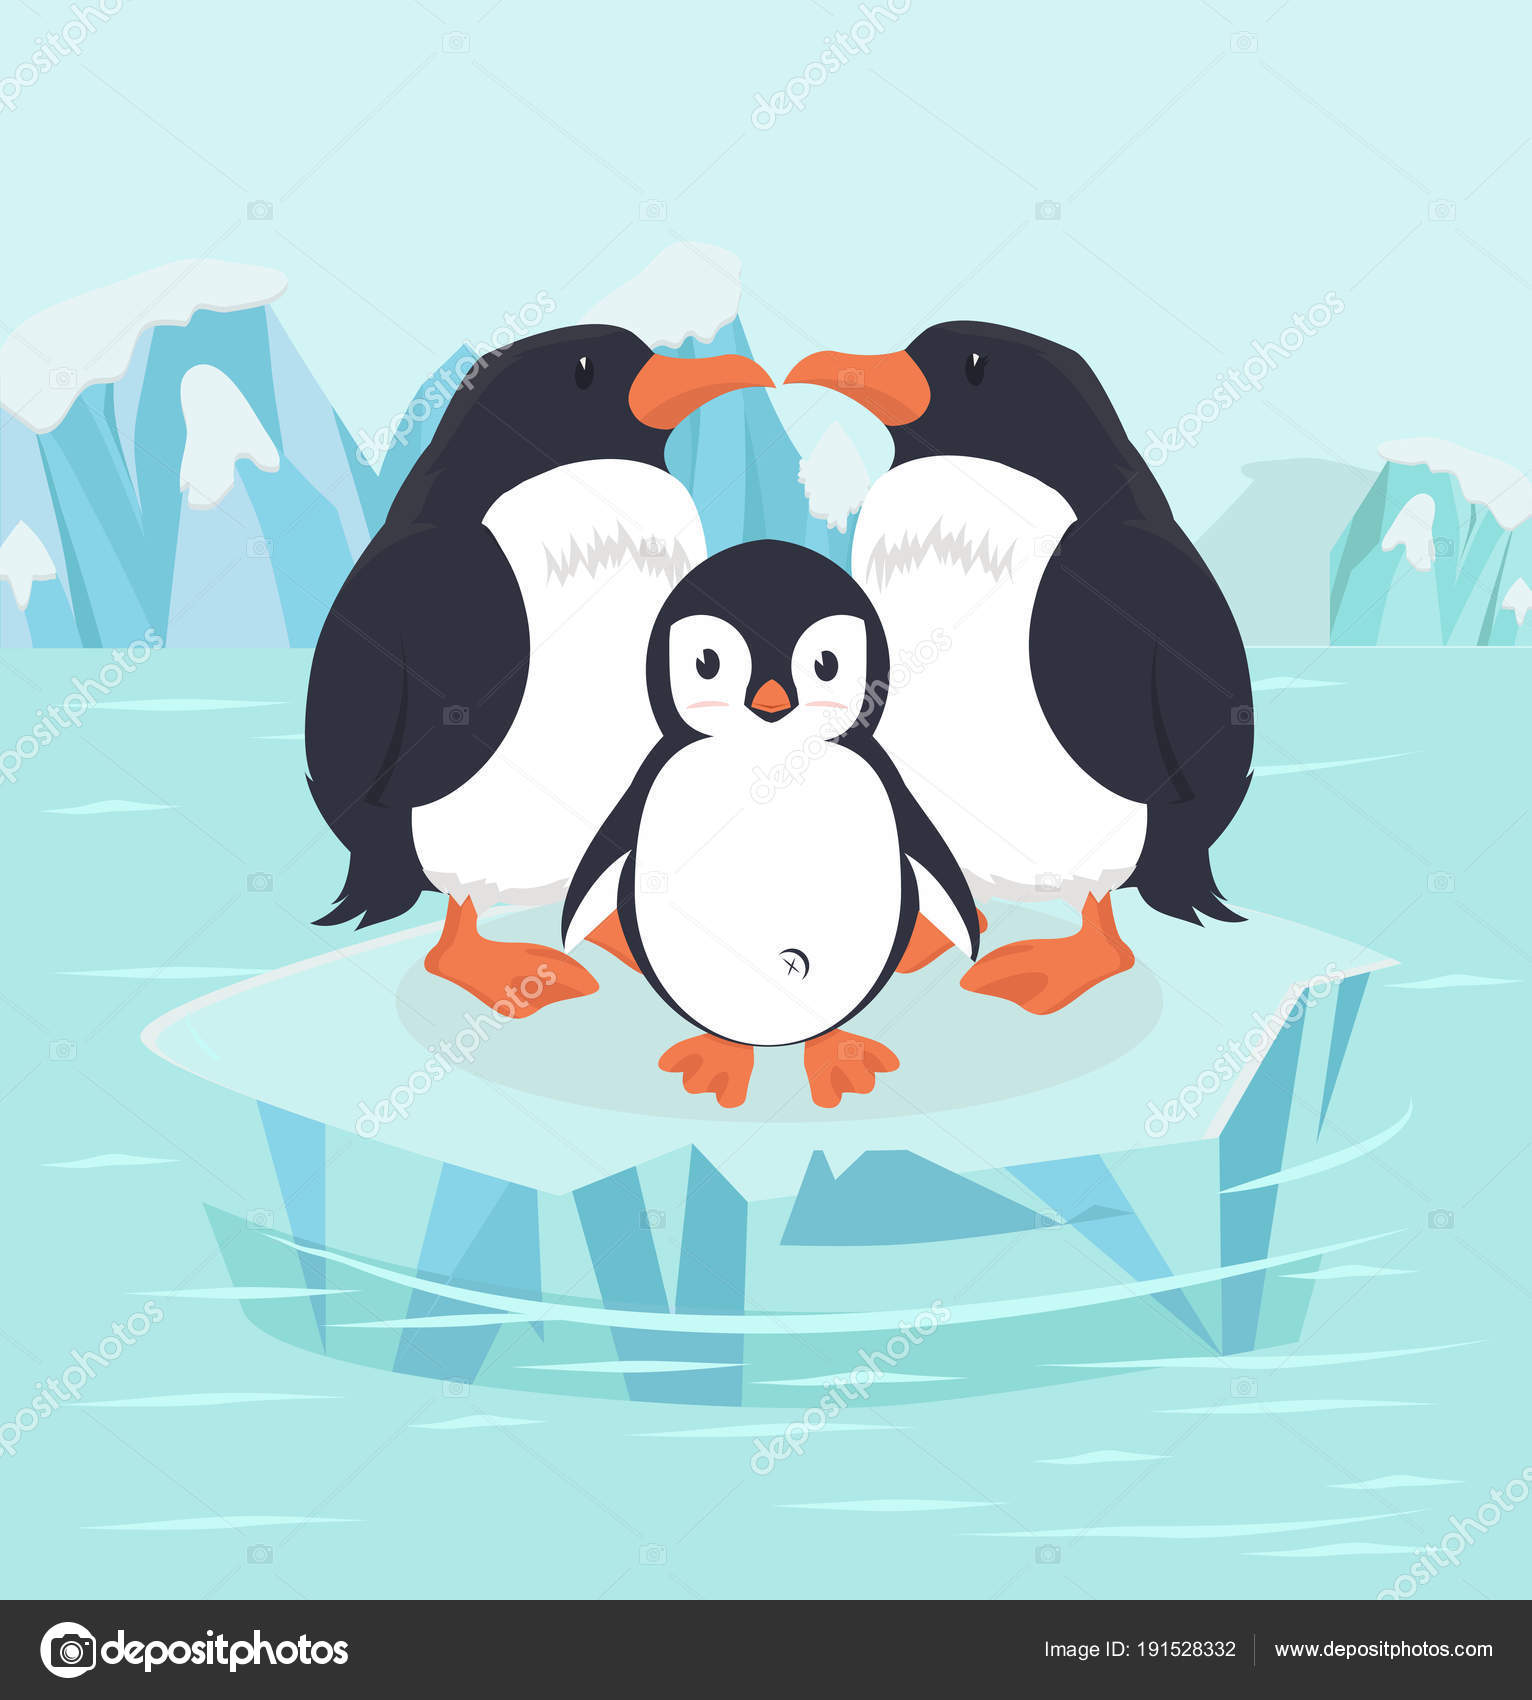 Penguin Bird Baby North Pole Arctic — Stock Vector ©  focus_bell@hotmail.co.th #191528332